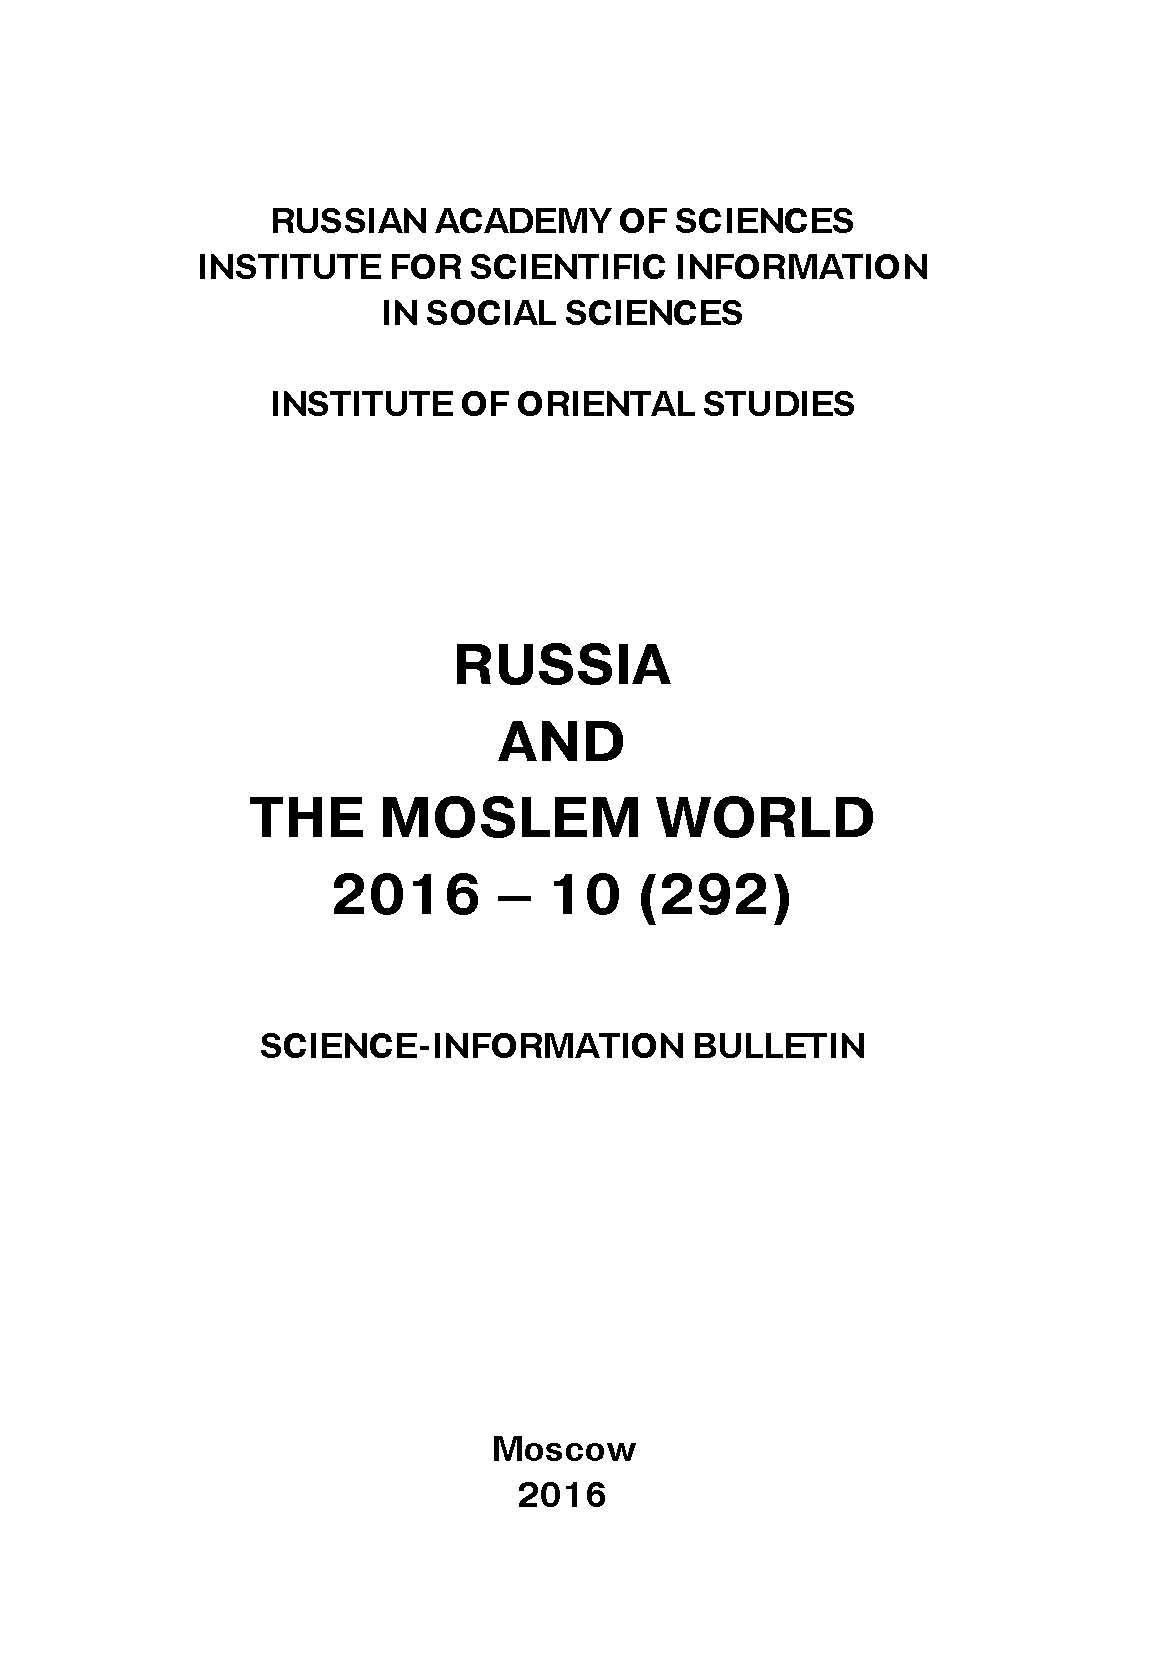 Сборник статей Russia and the Moslem World № 10 / 2016 сборник статей russia and the moslem world 05 2016